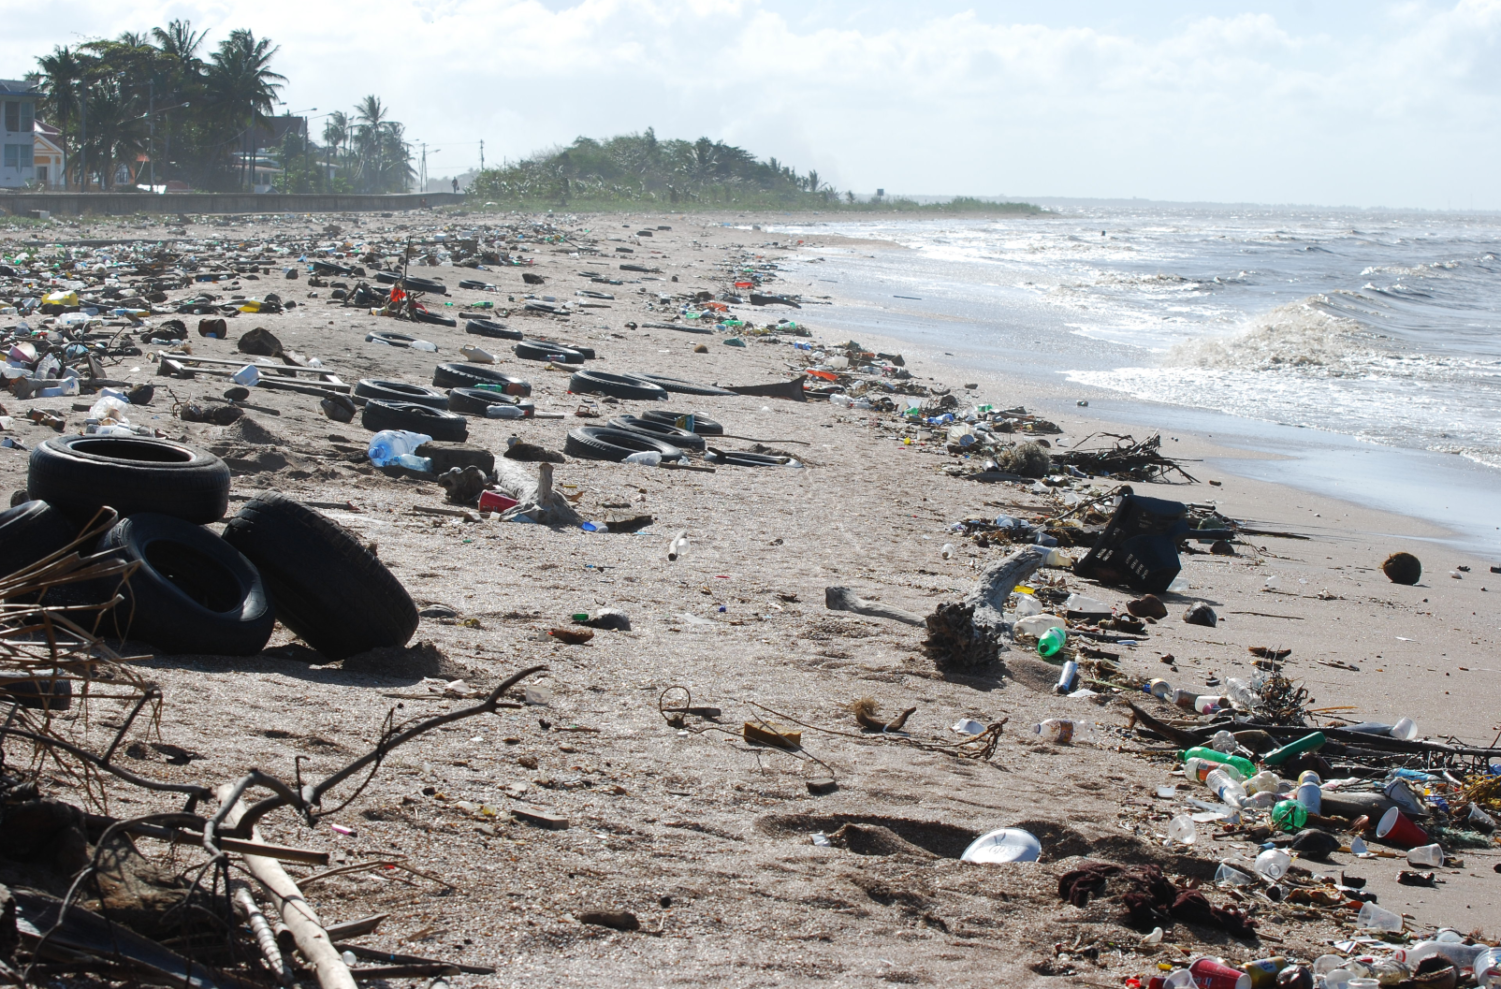 Showing the litter problem on the coast of Guyana.